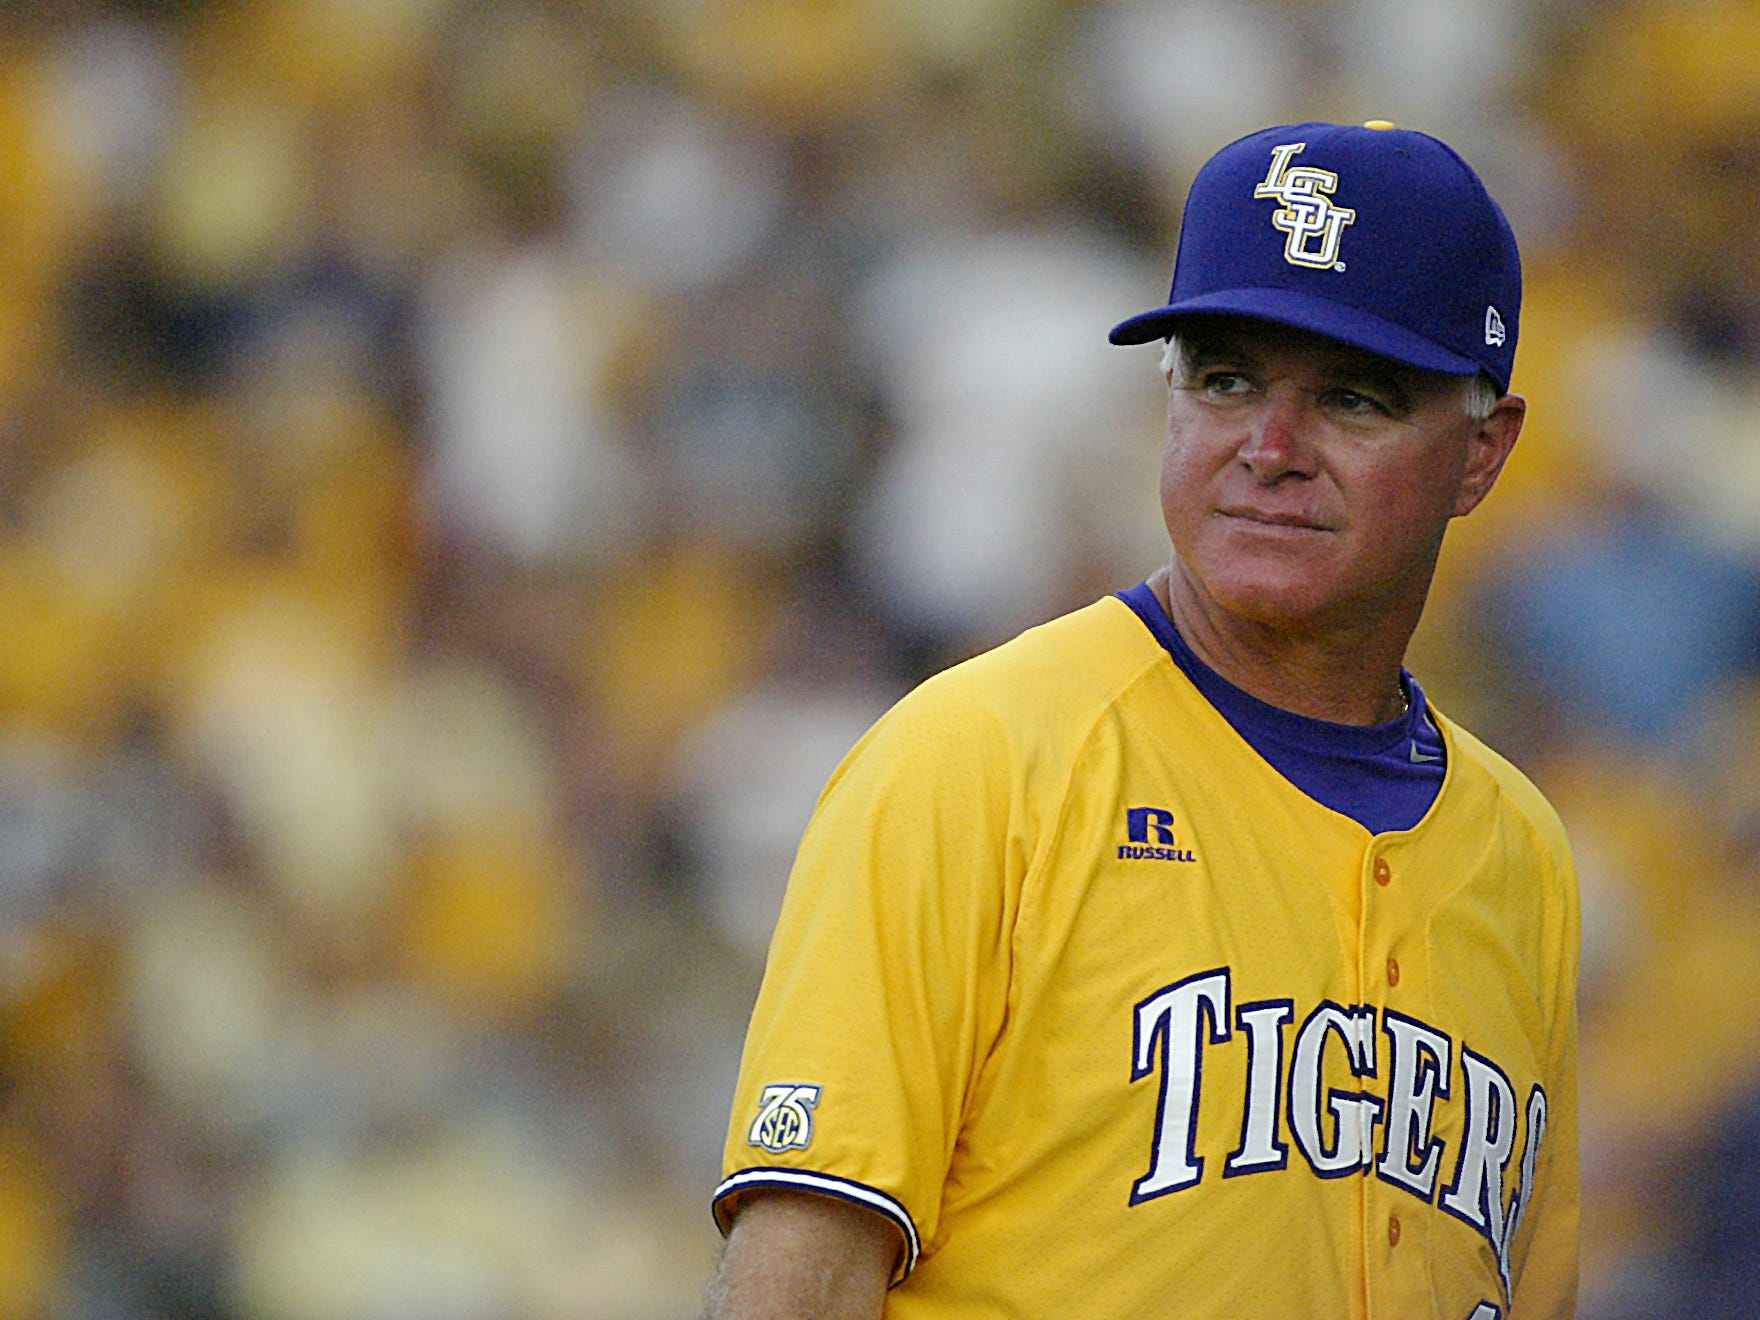 LSU Tigers head coach Paul Mainieri has a reputation for protecting his pitchers' arms.